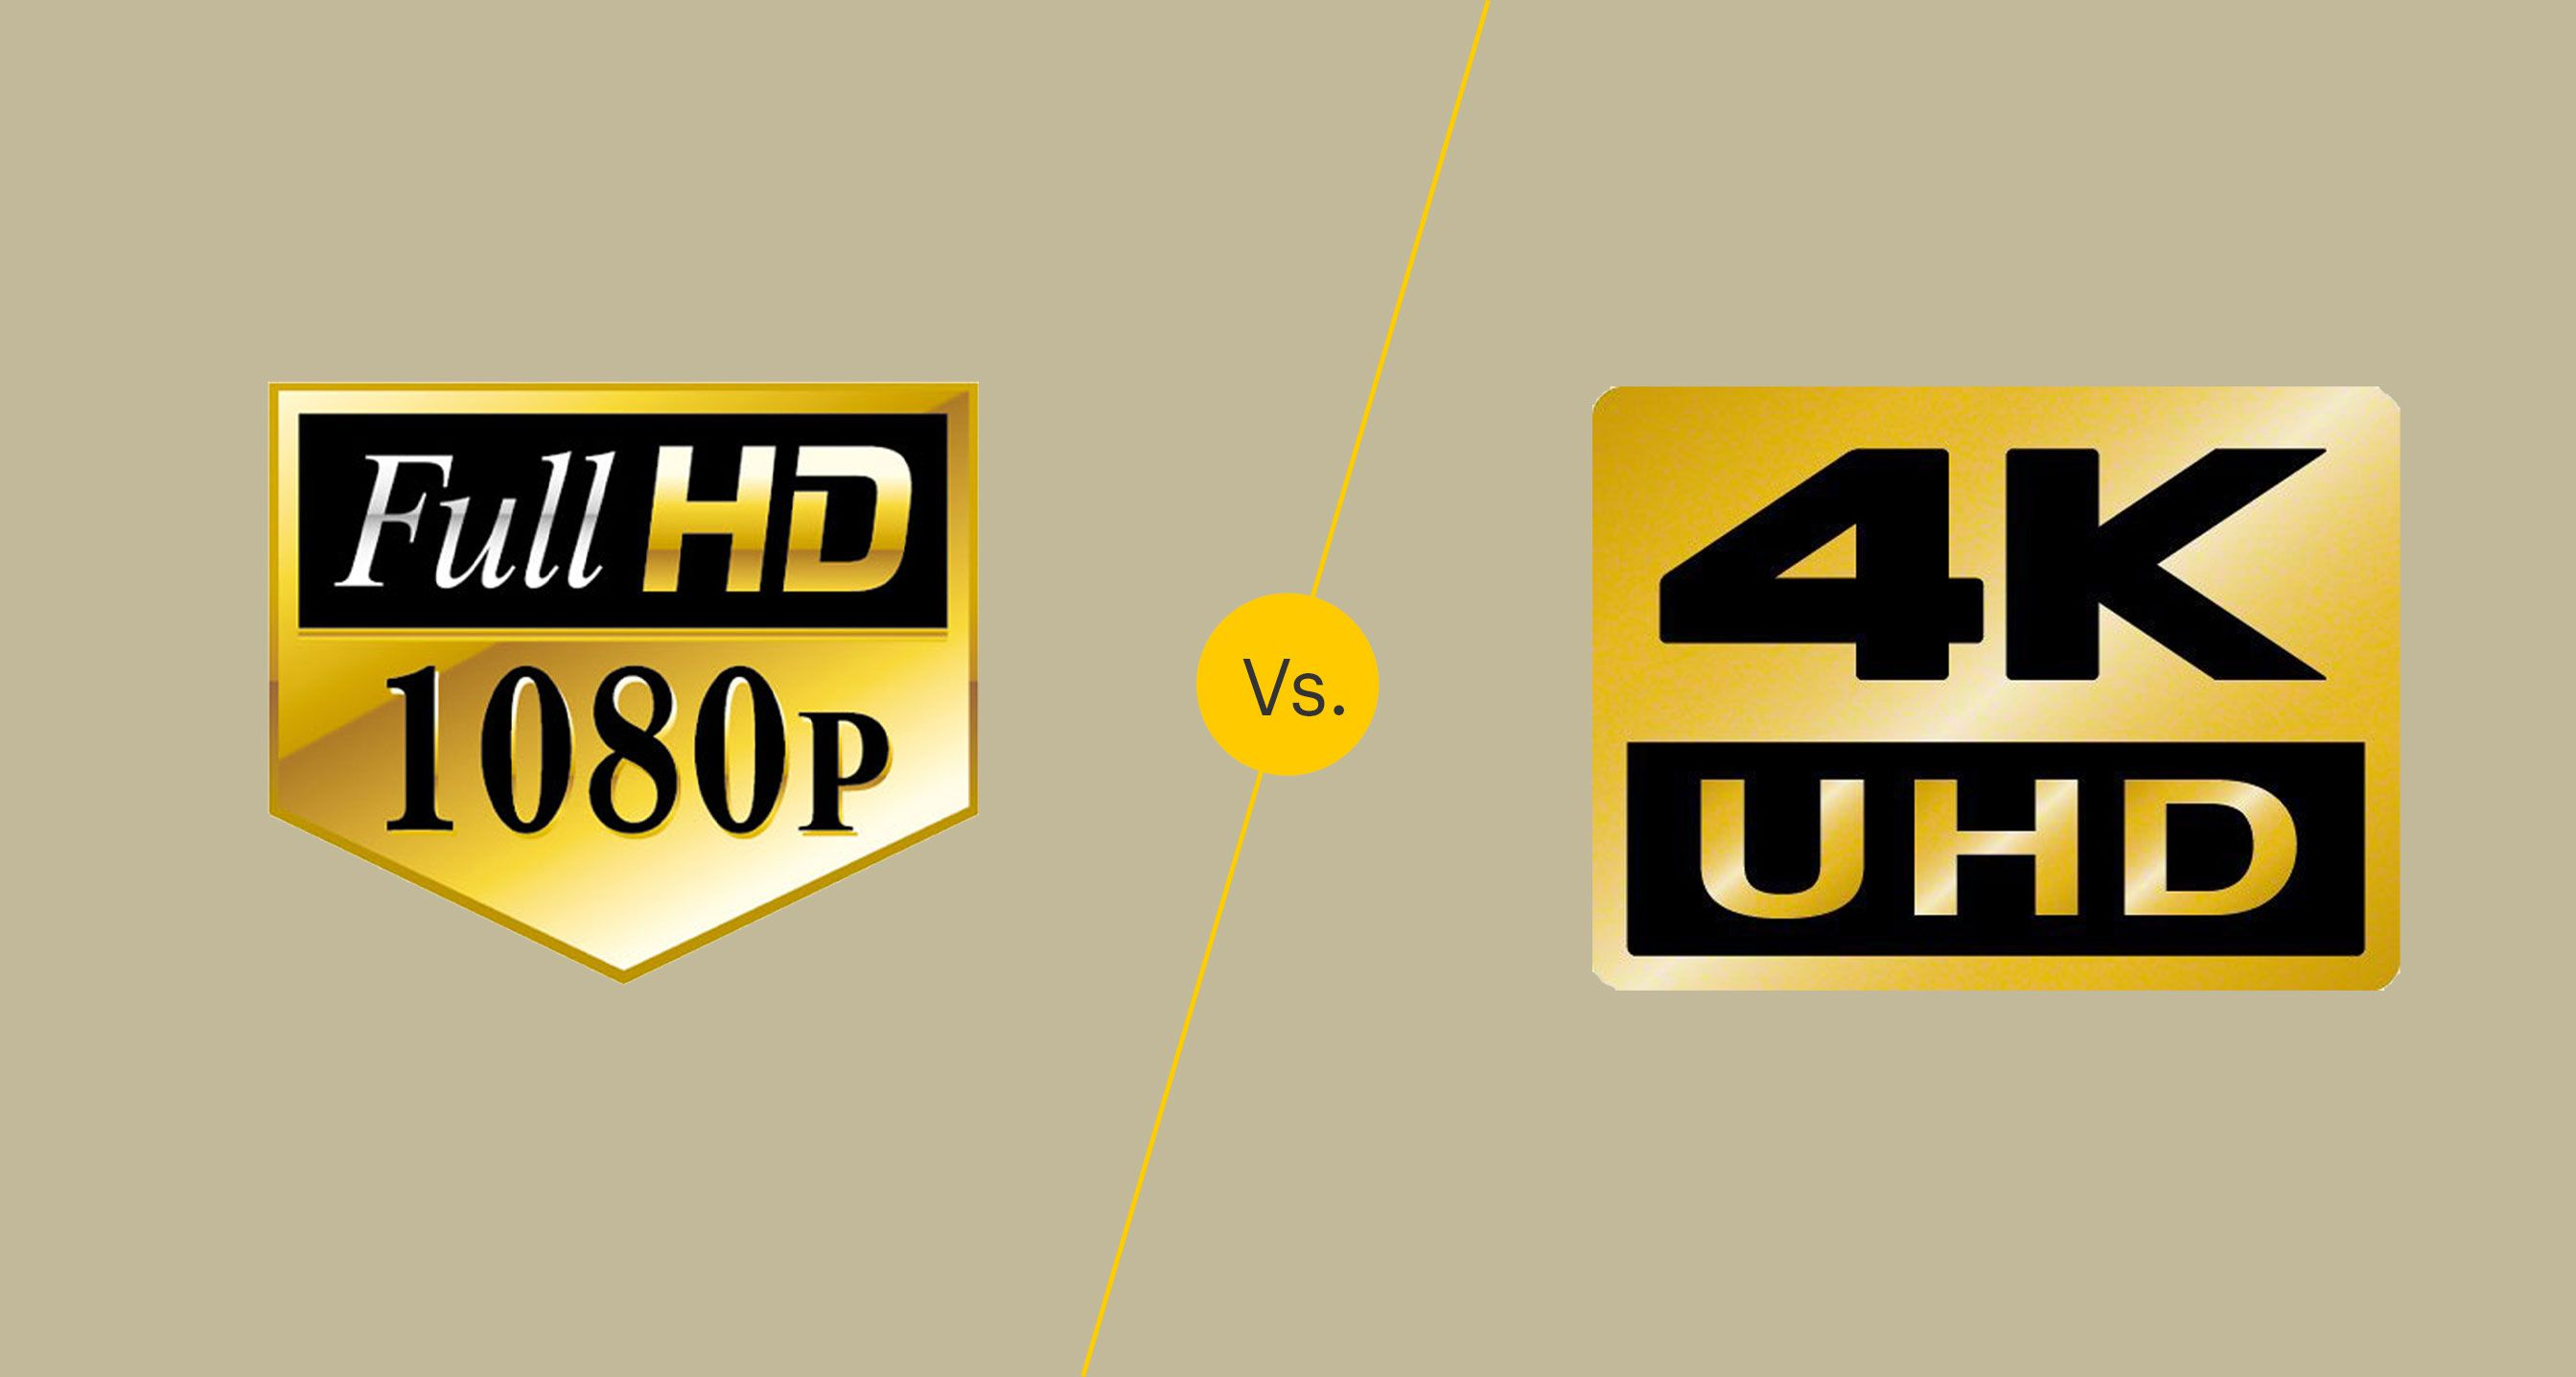 Fhd Vs Uhd What S The Difference